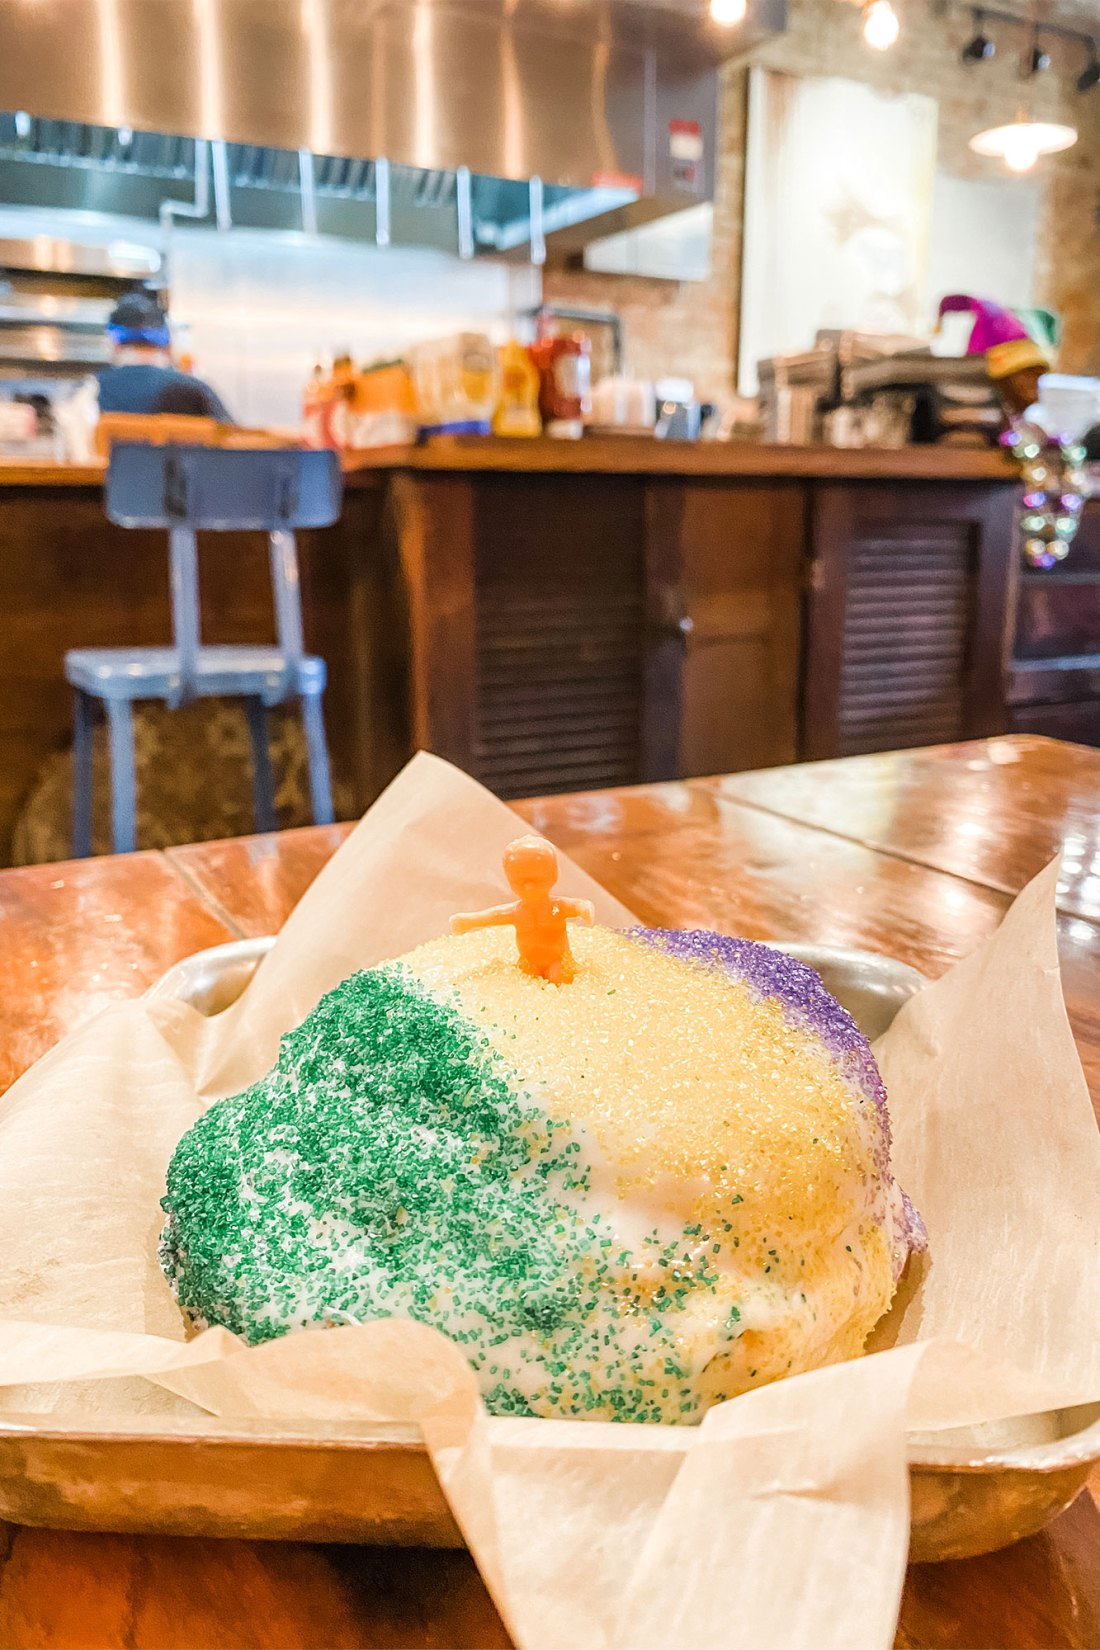 Donut covered in green, yellow, and purple sprinkles in New Orleans